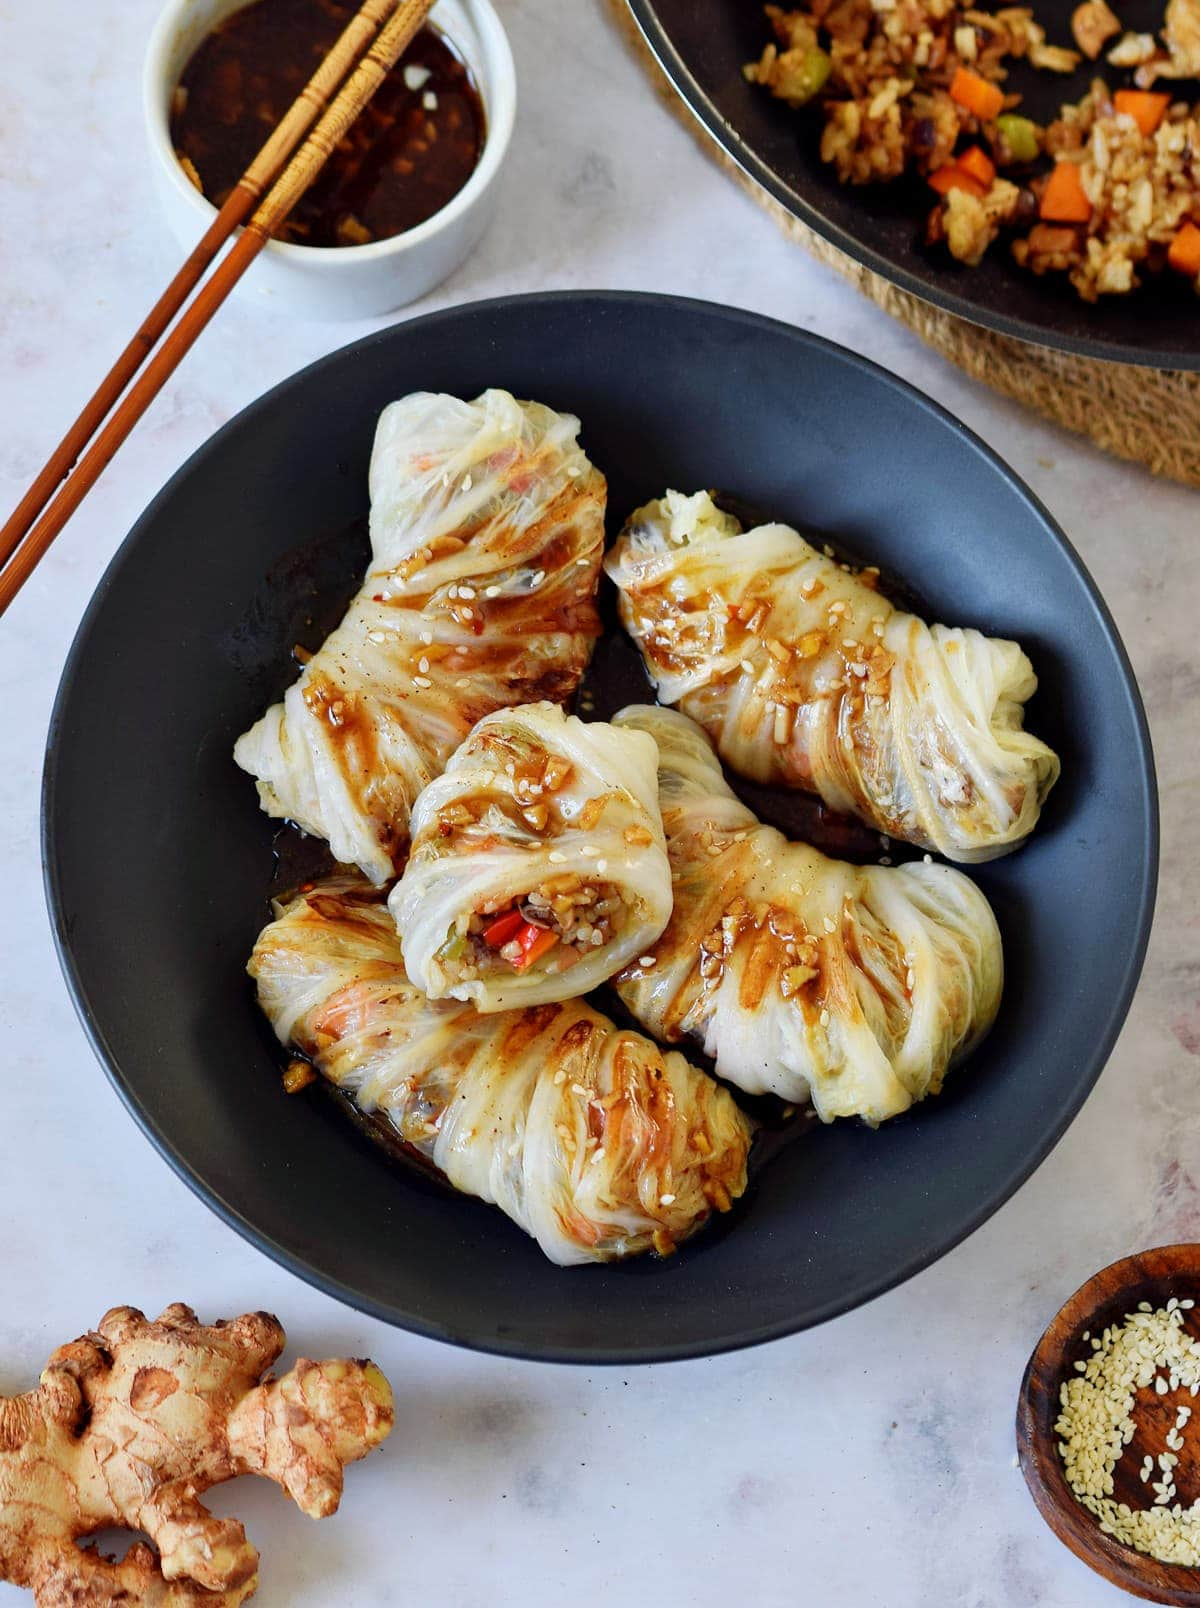 Vegan Cabbage Rolls Asian Inspired Wraps Elavegan